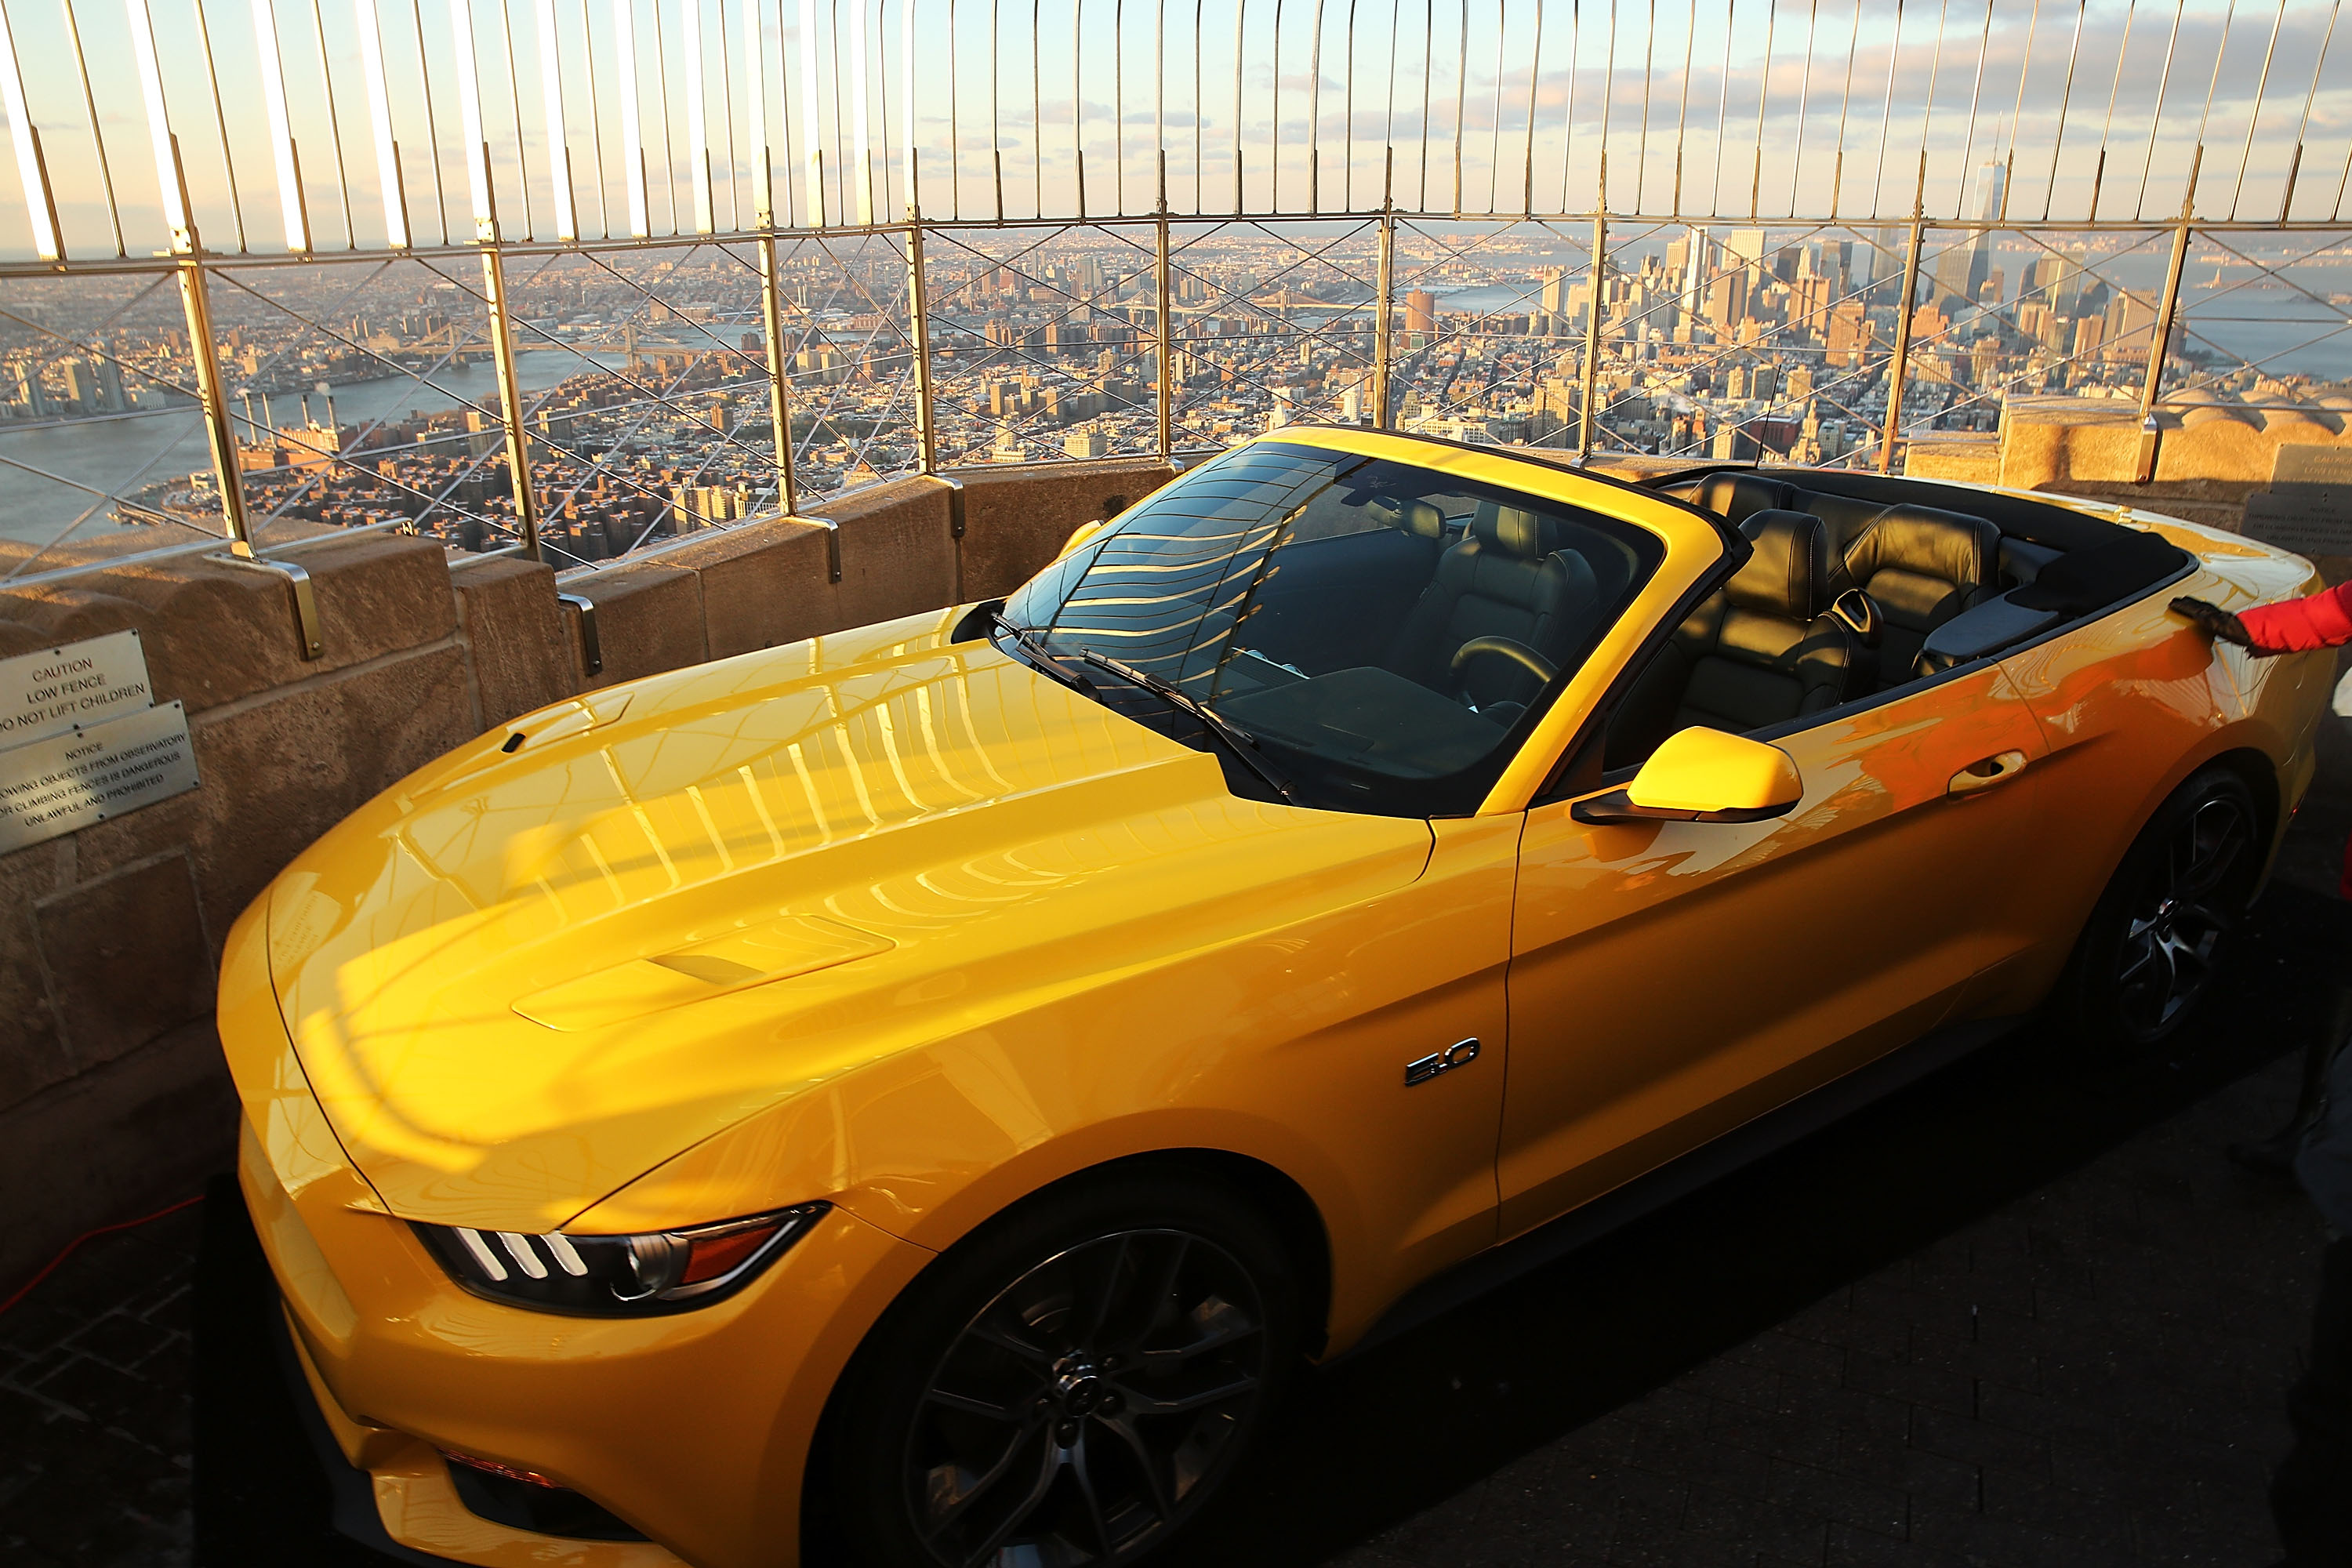 The Ford Mustang turns 50 this year.